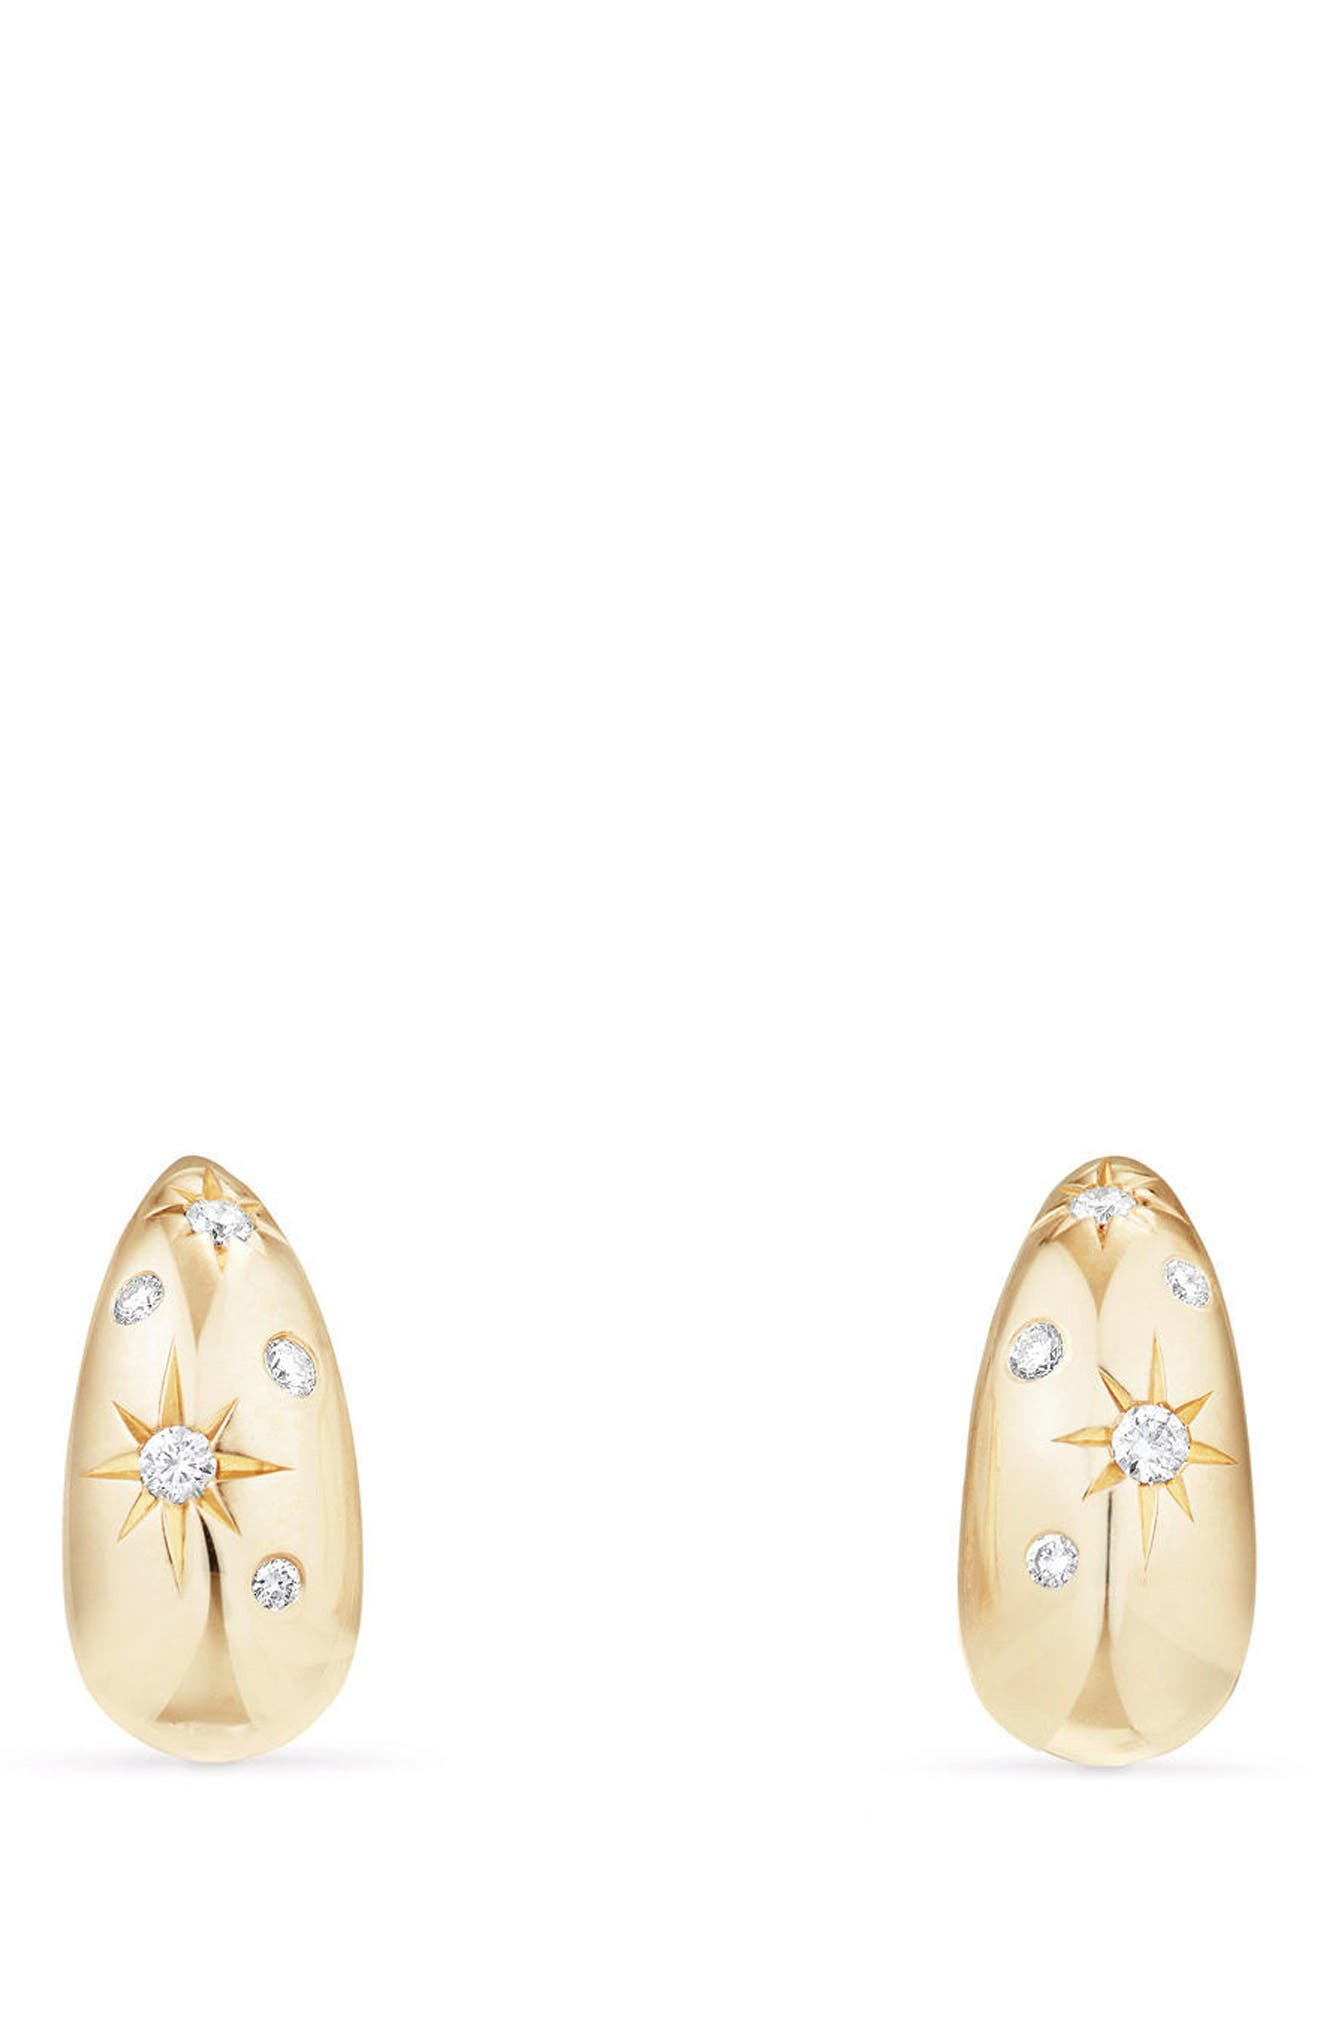 Alternate Image 1 Selected - David Yurman Pure Form Pod Earrings with Diamonds in 18K Gold, 15mm